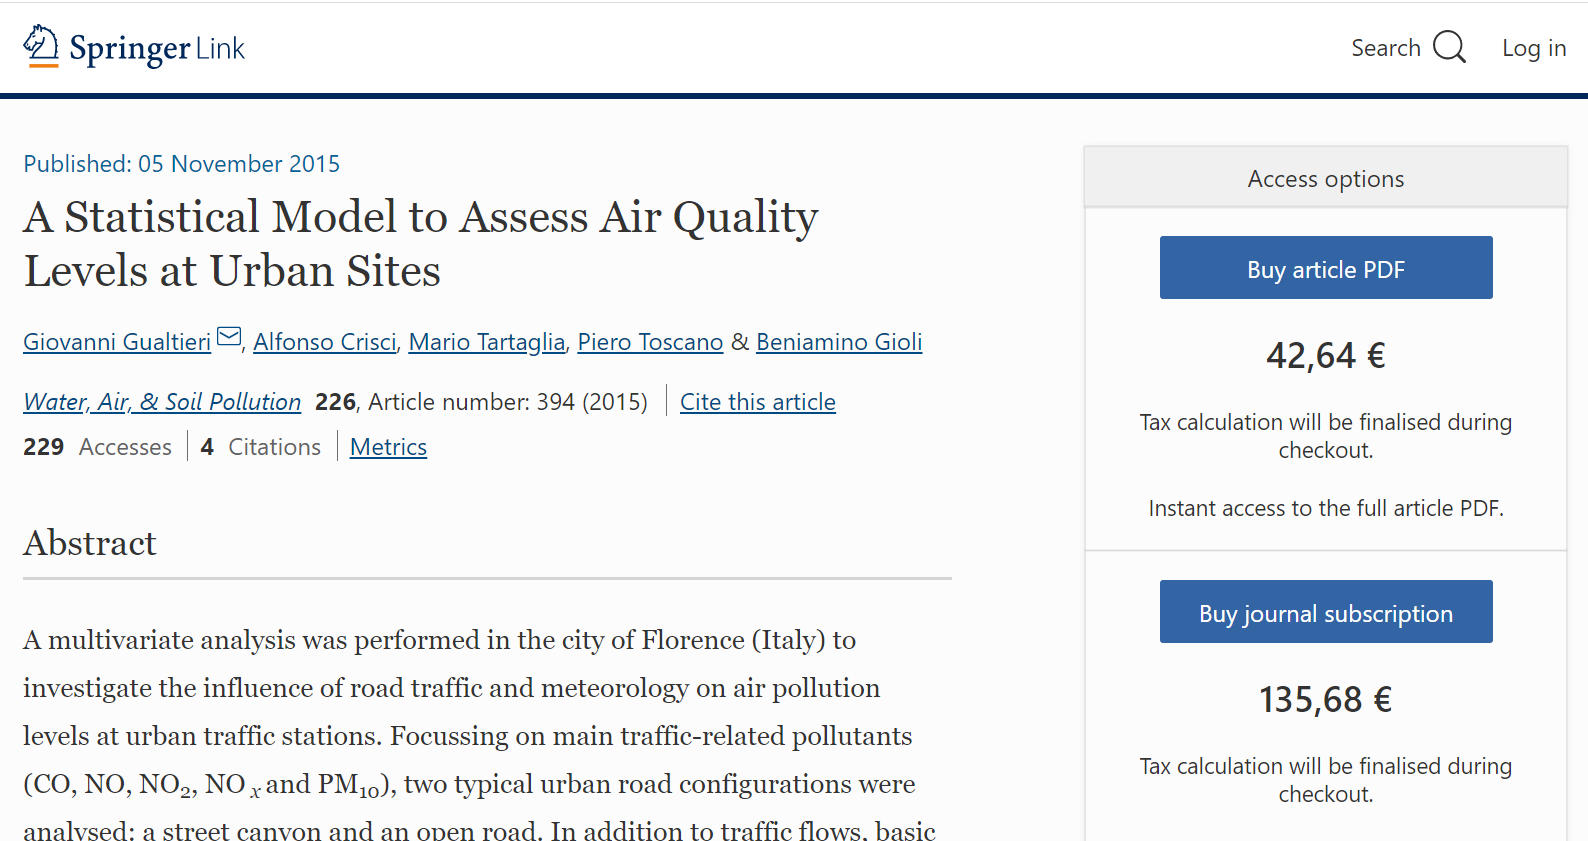 A Statistical Model to Assess Air Quality Levels at Urban Sites